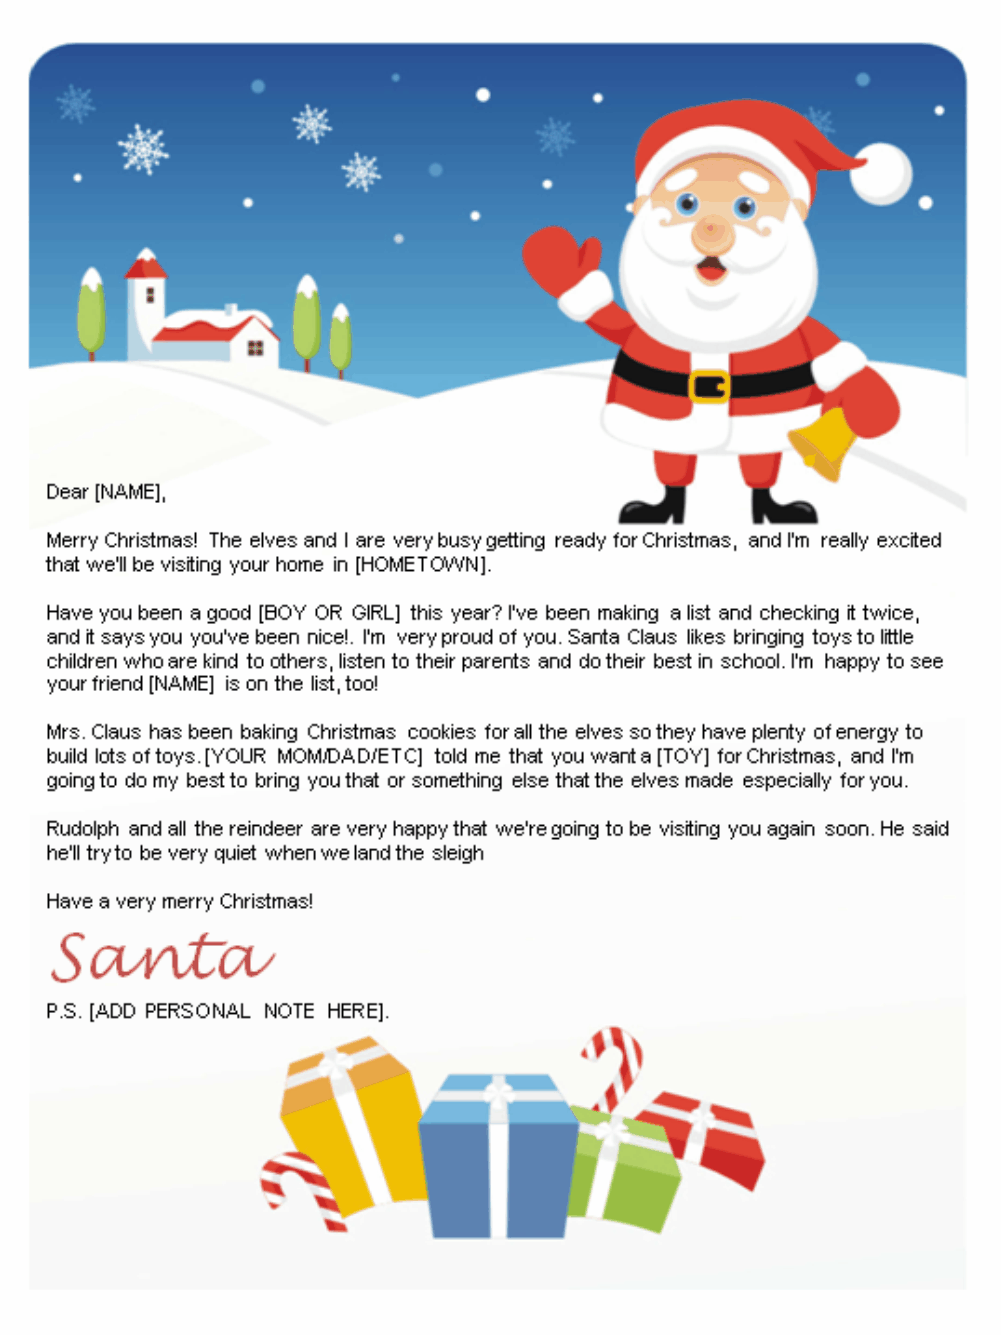 Free Letters From Santa  Santa Letters To Print At Home  Gifts